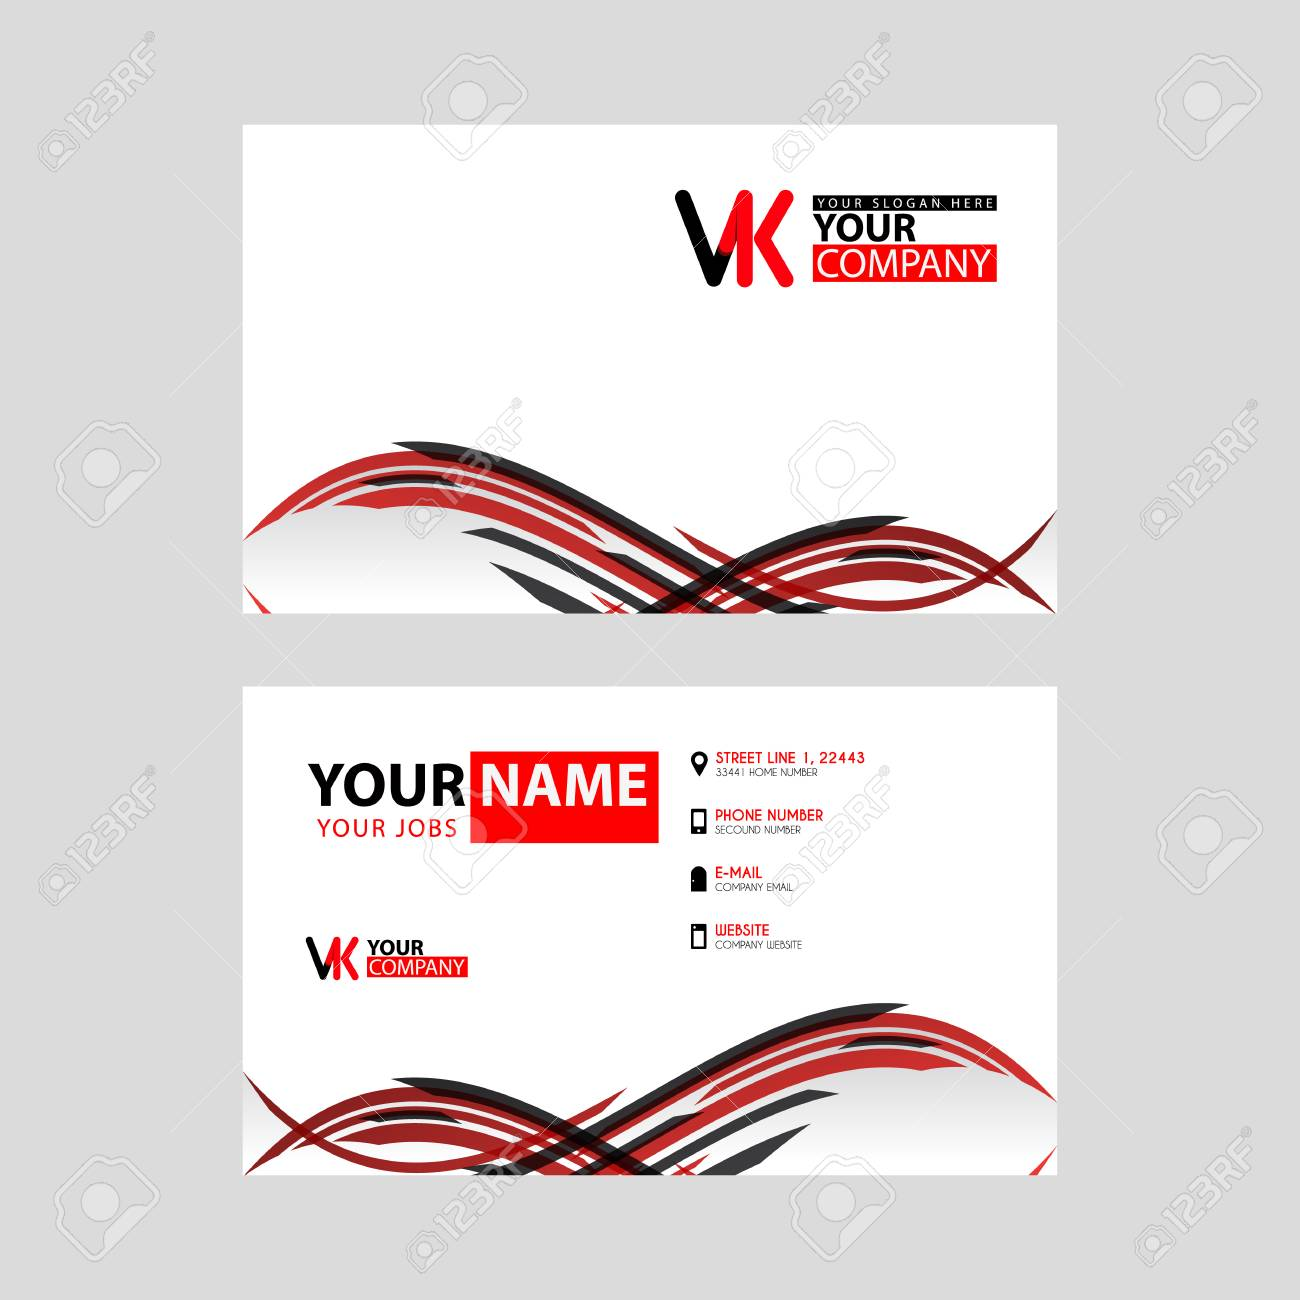 Horizontal Name Card With VK Logo Letter And Simple Red